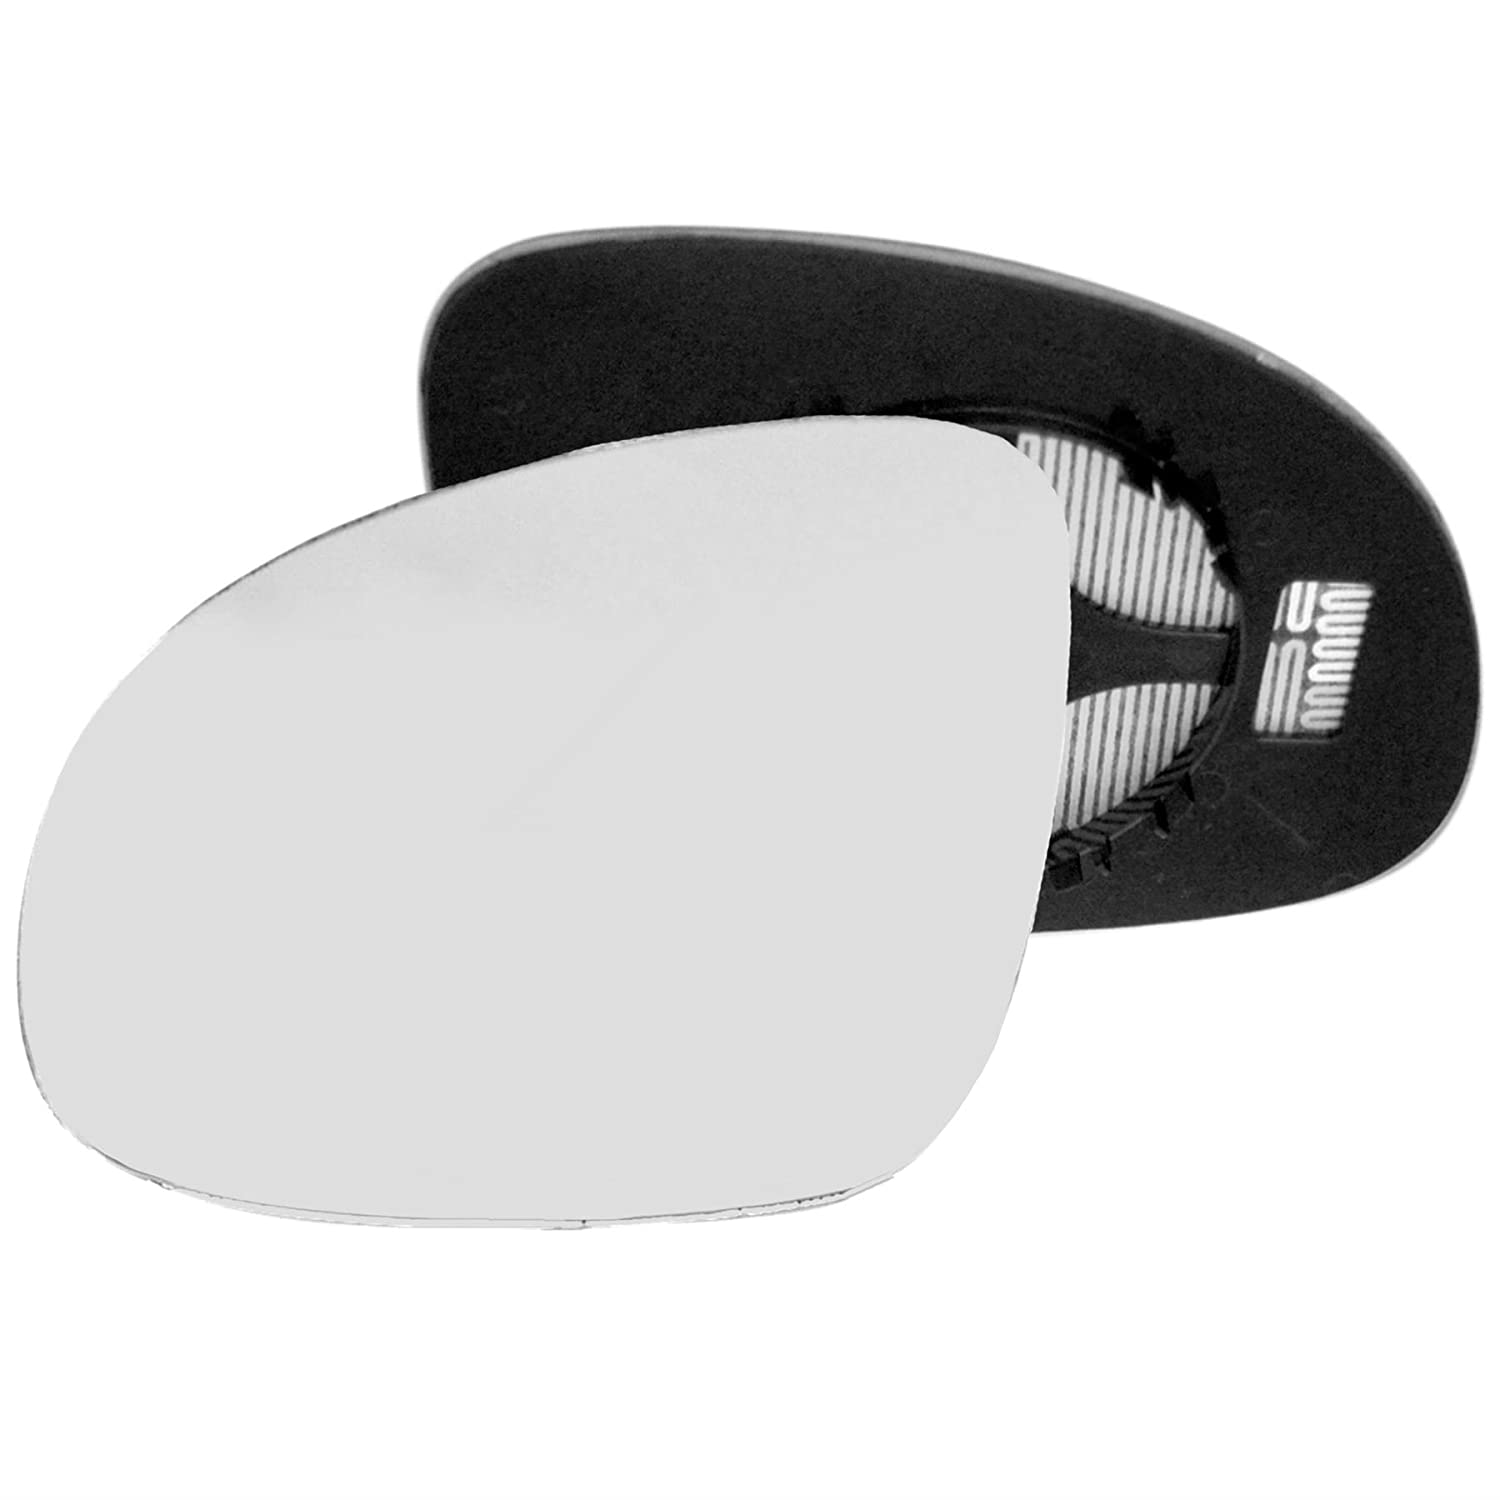 Passenger left hand side Heated wing door Silver mirror glass with backing plate #C-SHY//L-SKAYI09 Clip On